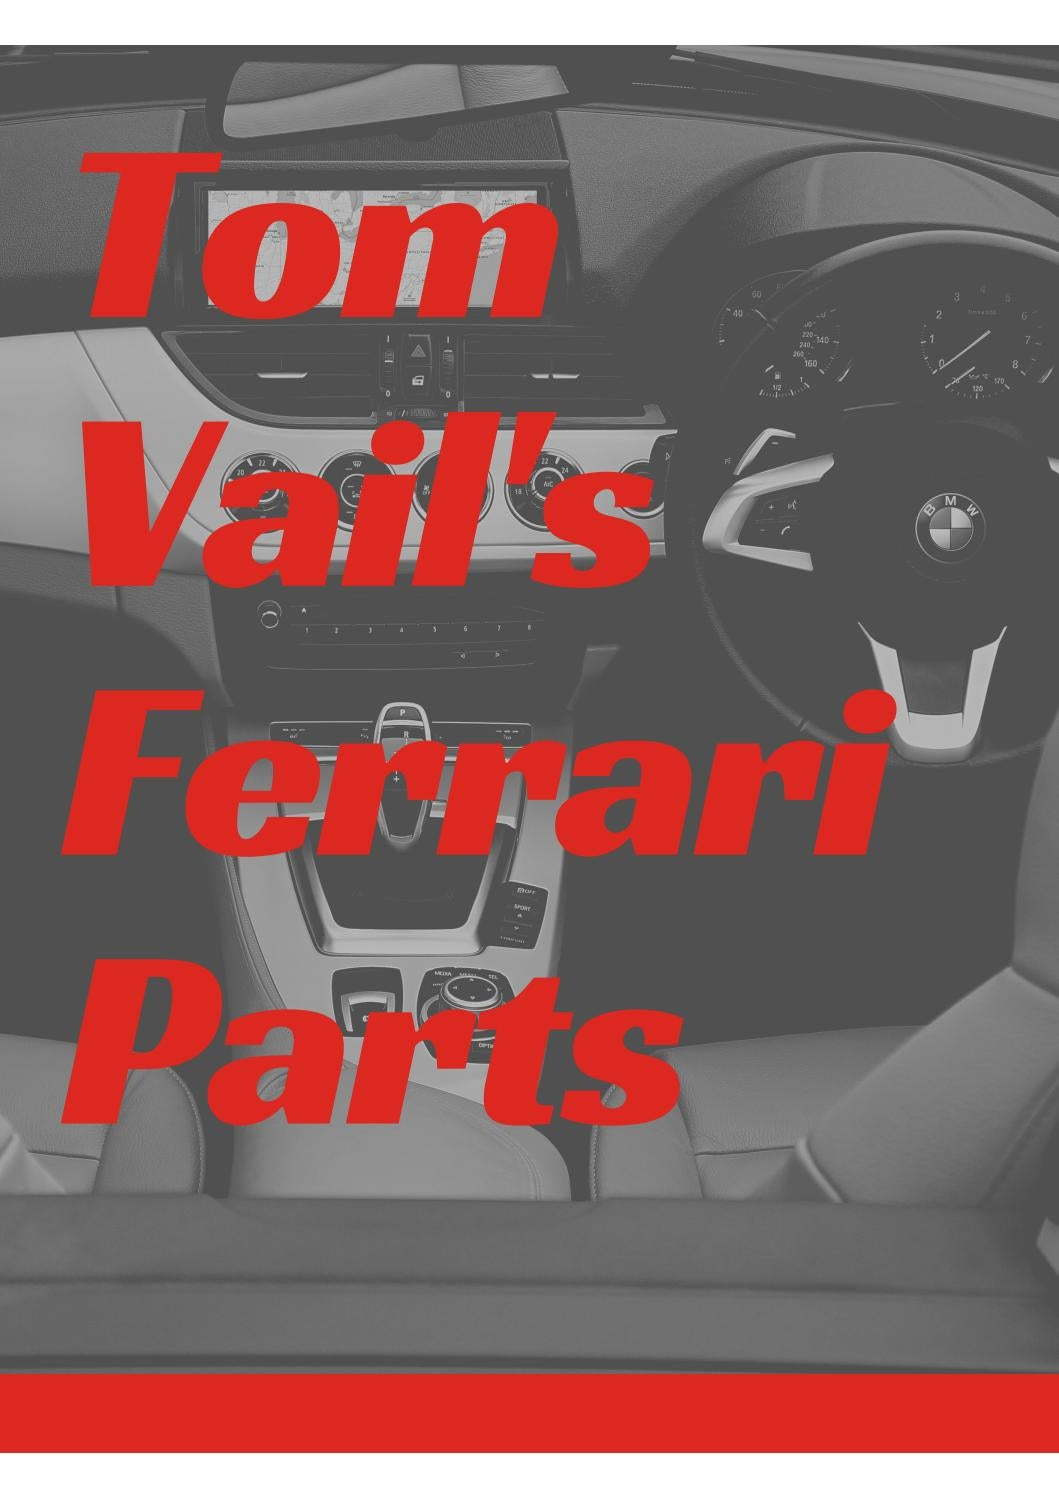 Looking For The All Ferrari Parts To Restore Your Ferrari F40 Parts By Allferrariparts09 Issuu